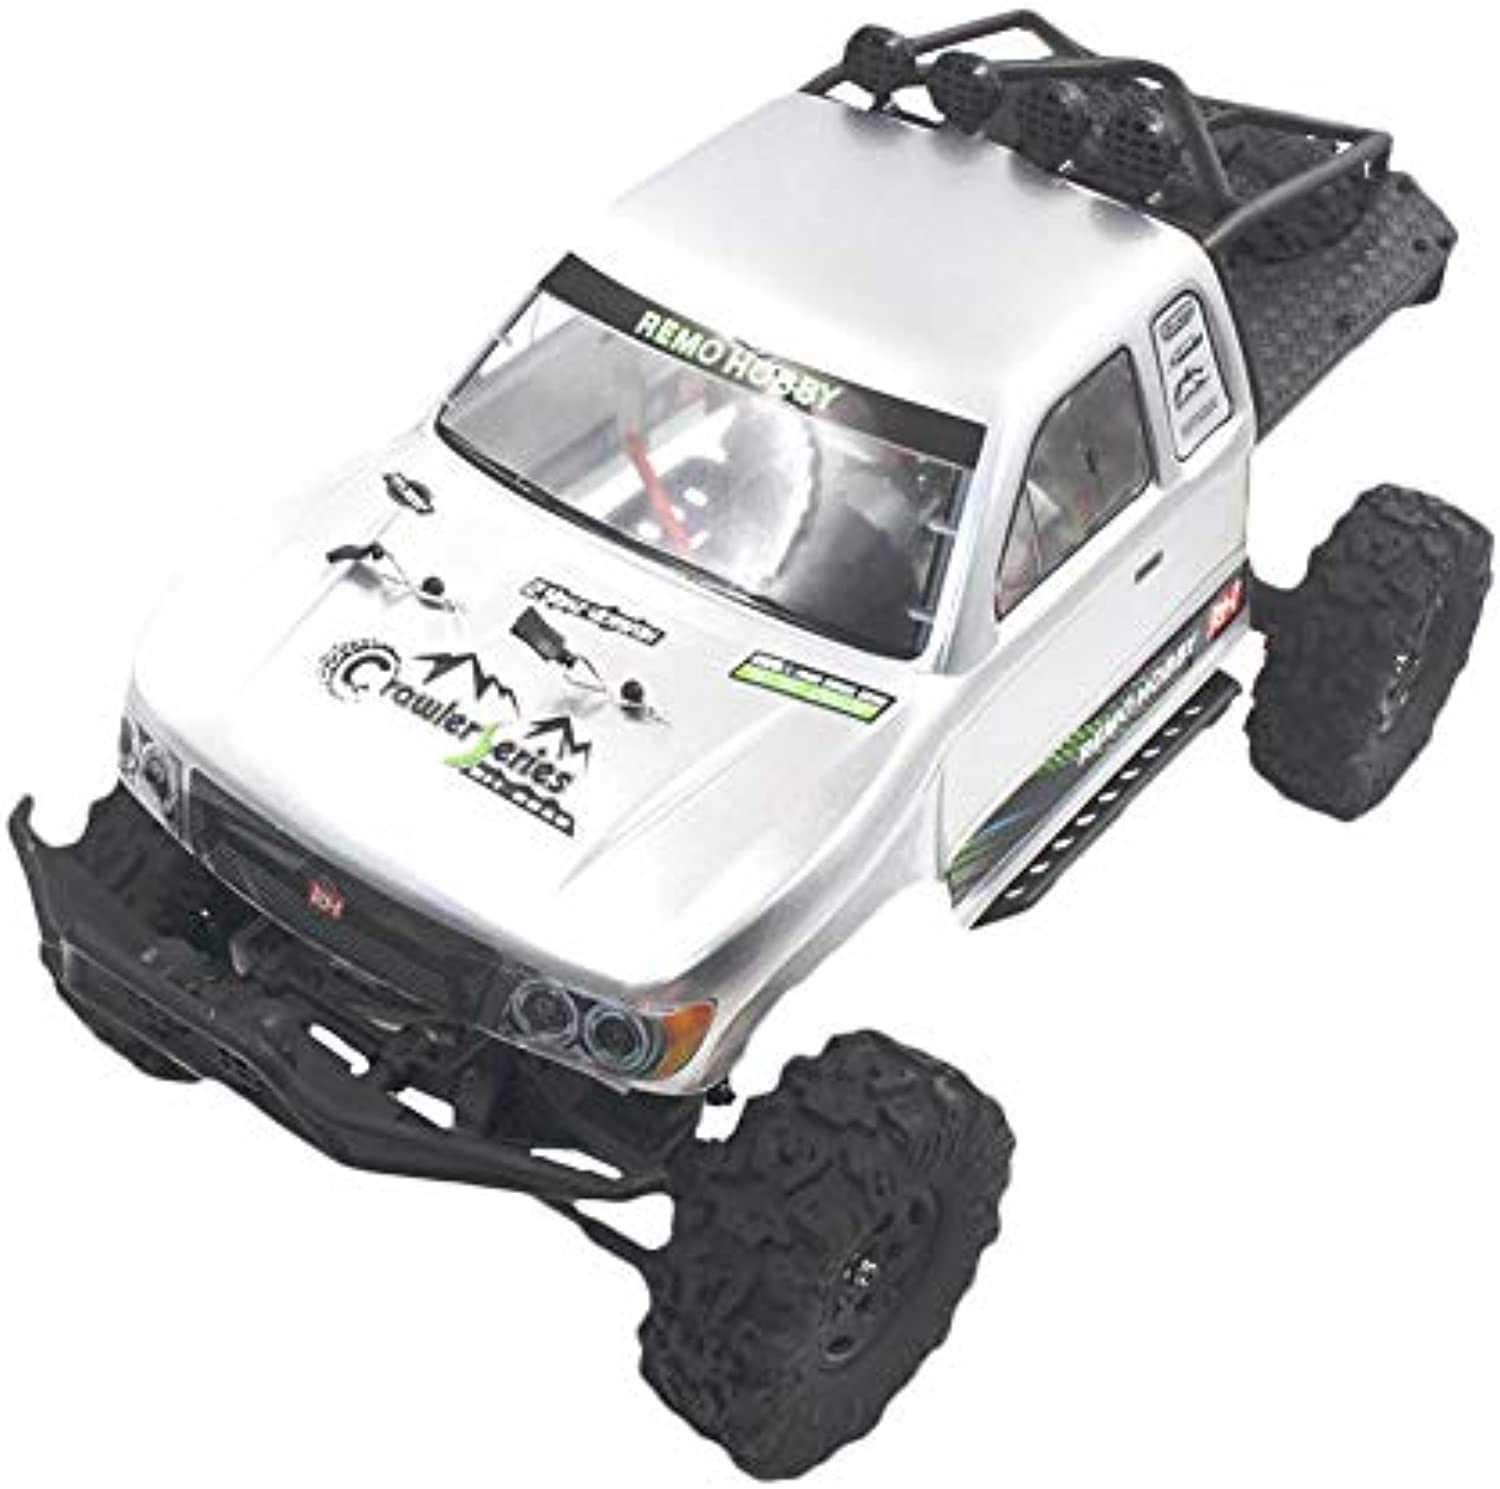 2.4G 4WD Brushed Rc Car Off-road Rock Crawler Trail Rigs Truck RTR Toy